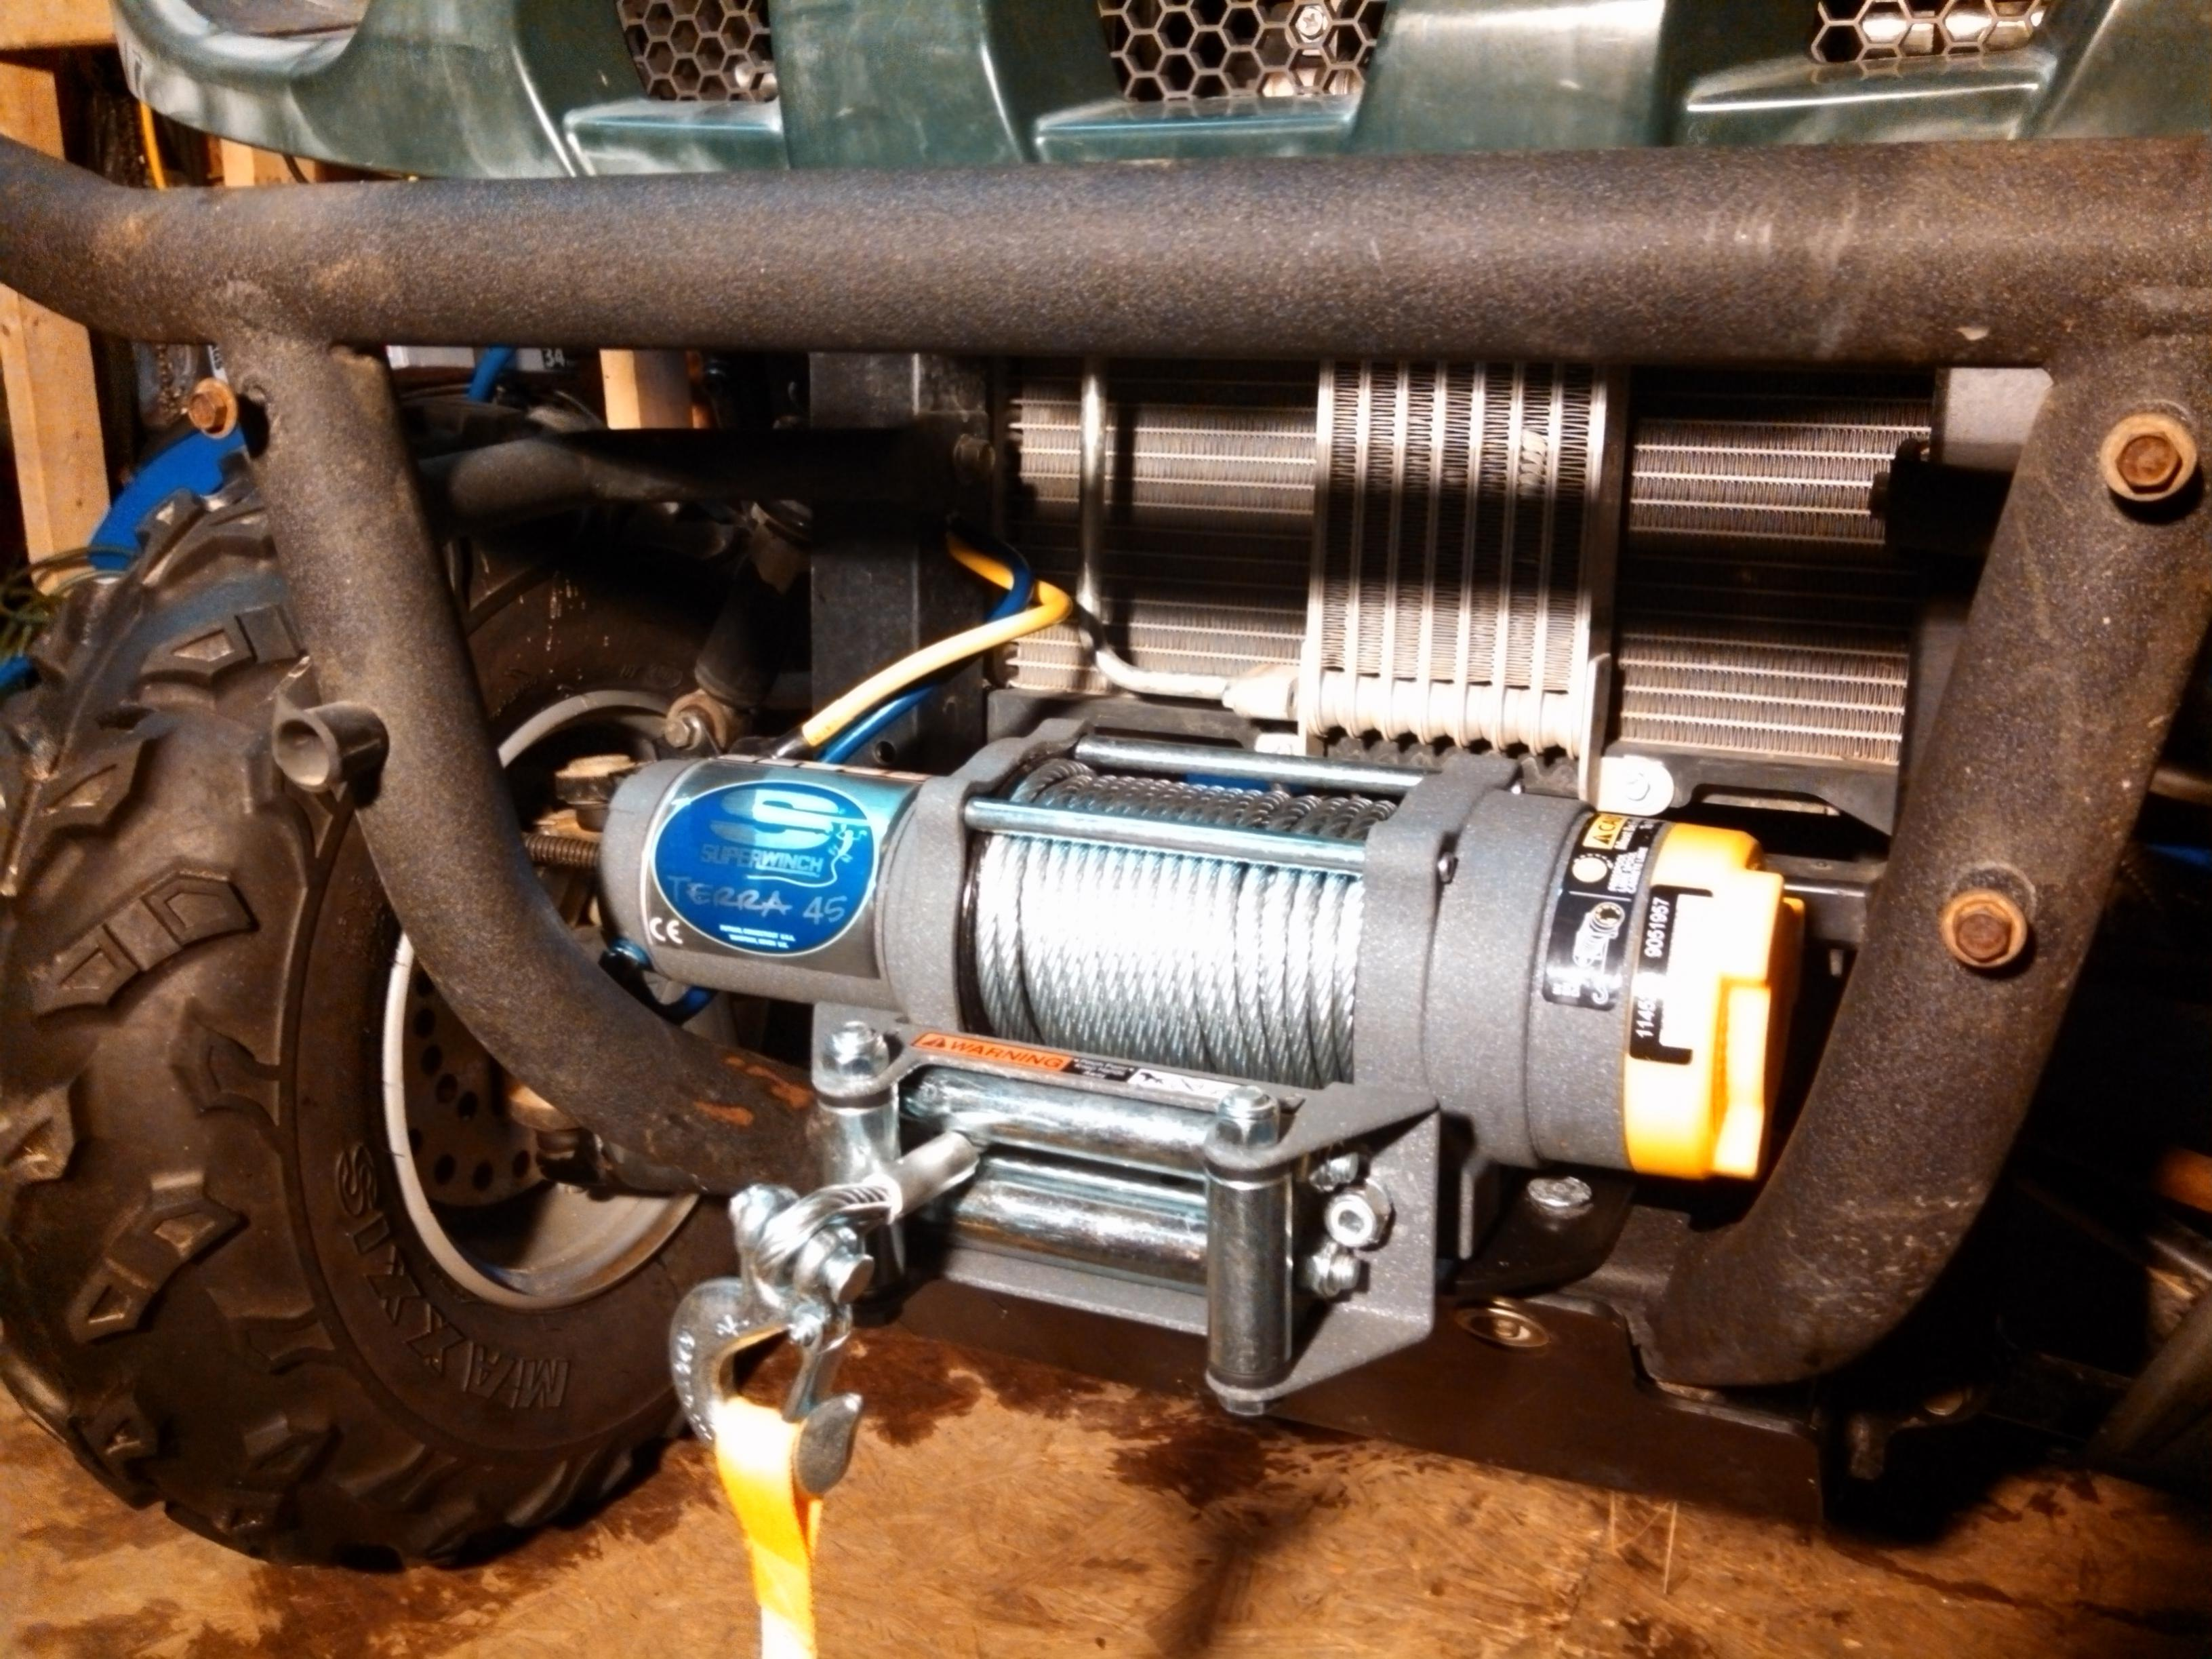 Superwinch Terra 45 Wiring Diagram 34 Images Electrical Yamaha Rhino 32539d1362269876 Installed Img 20130302 174318 949 The Forum